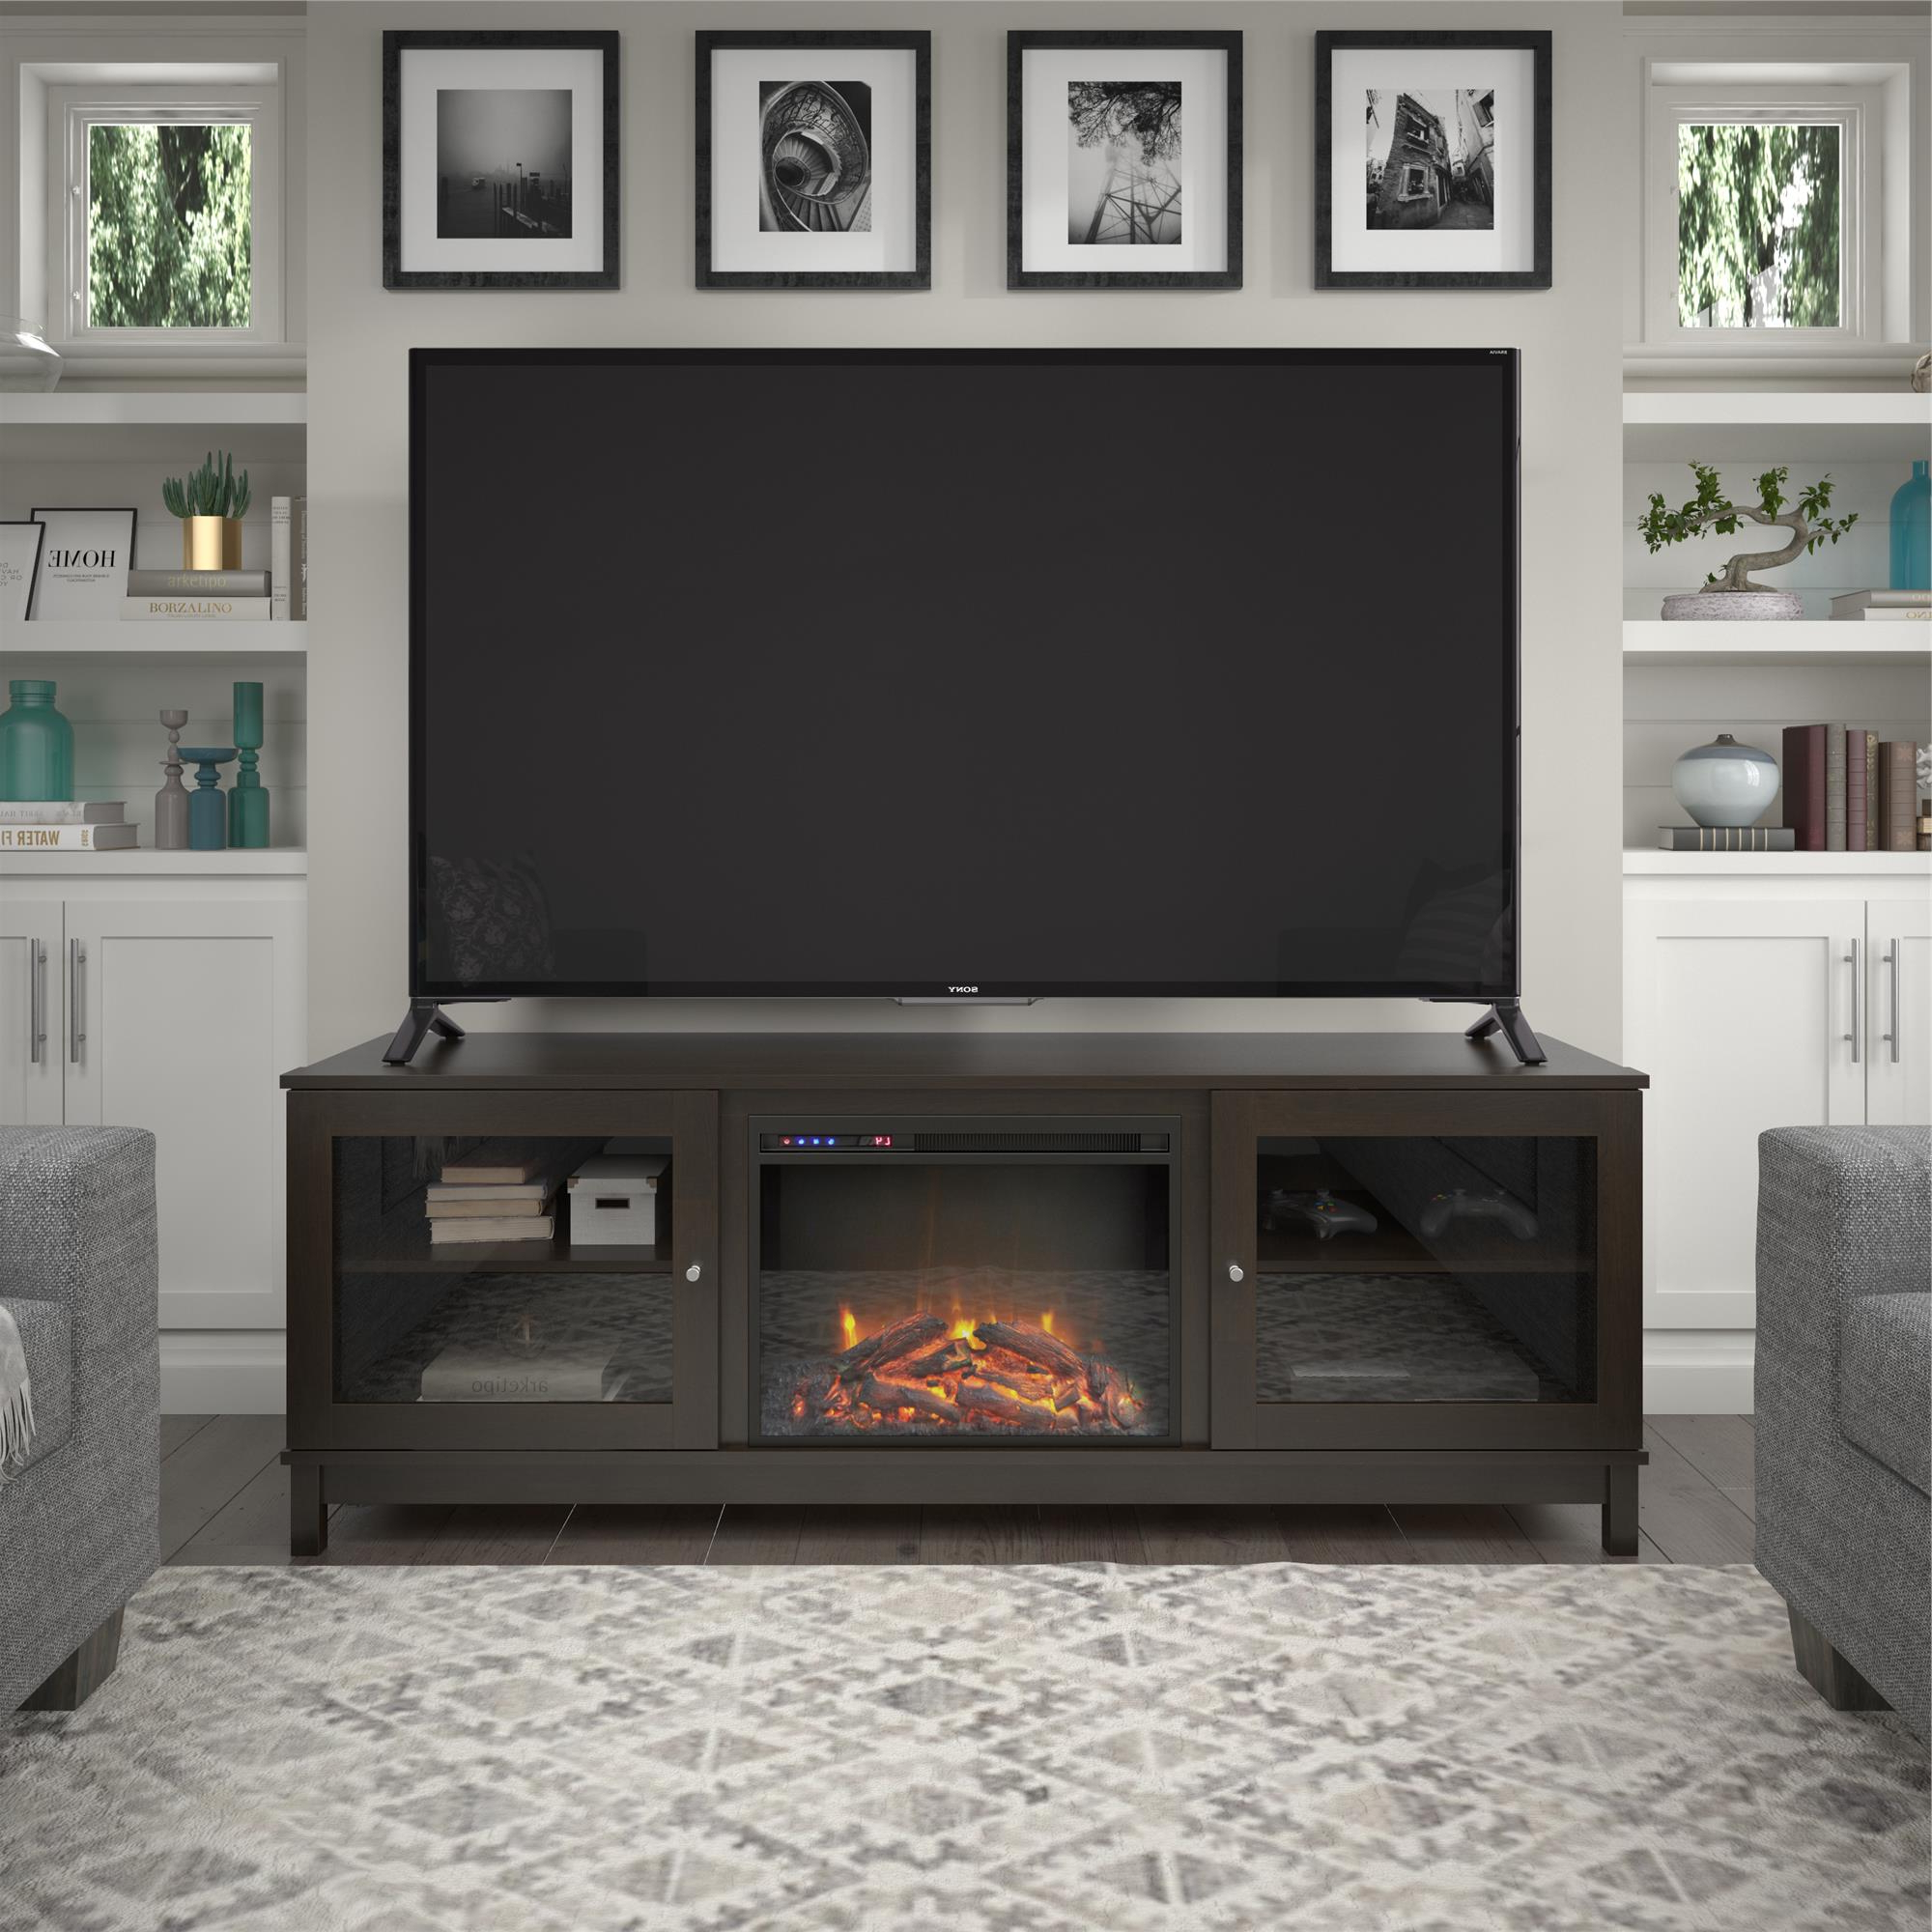 """2018 Ameriwood Home Swanson Fireplace Tv Stand For Tvs Up To 70 Regarding Mainor Tv Stands For Tvs Up To 70"""" (View 5 of 25)"""